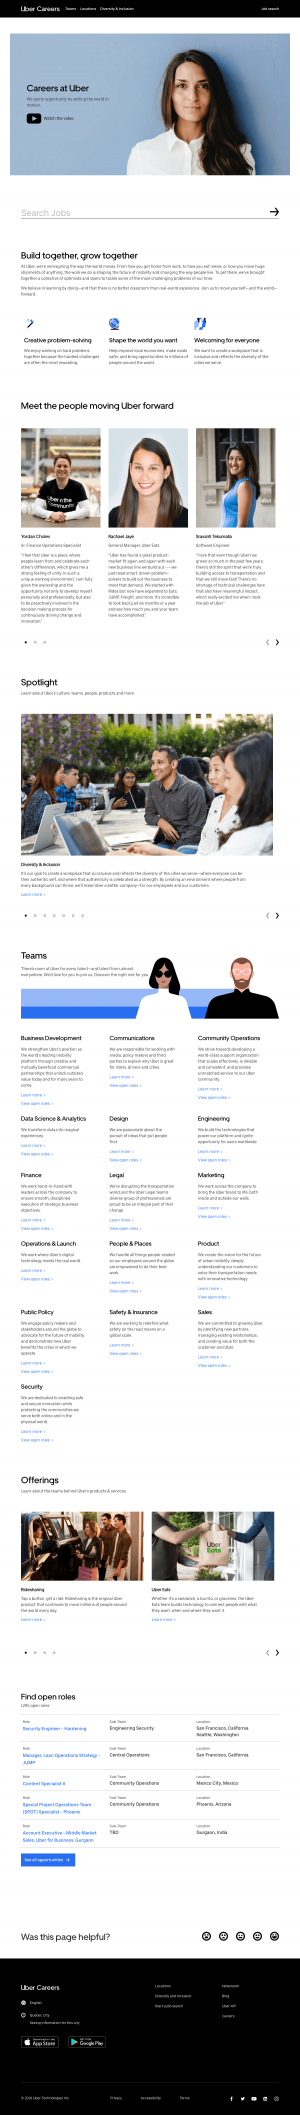 Career page - Uber